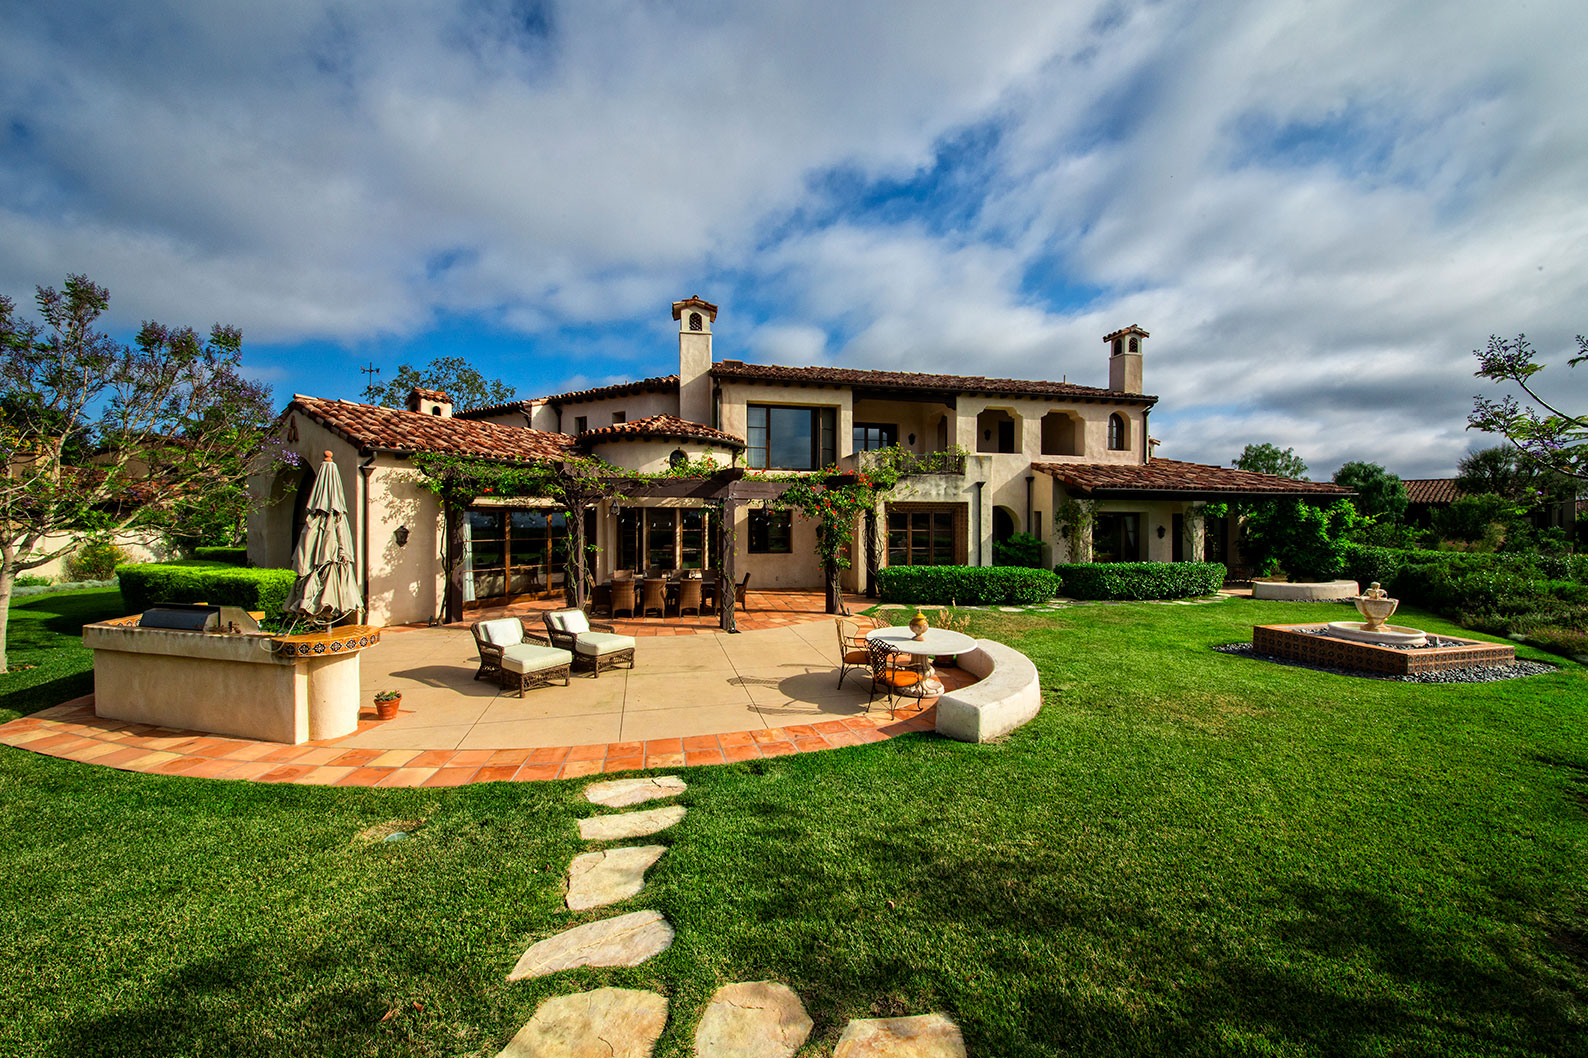 Architecture Photography in Rancho santa Fe